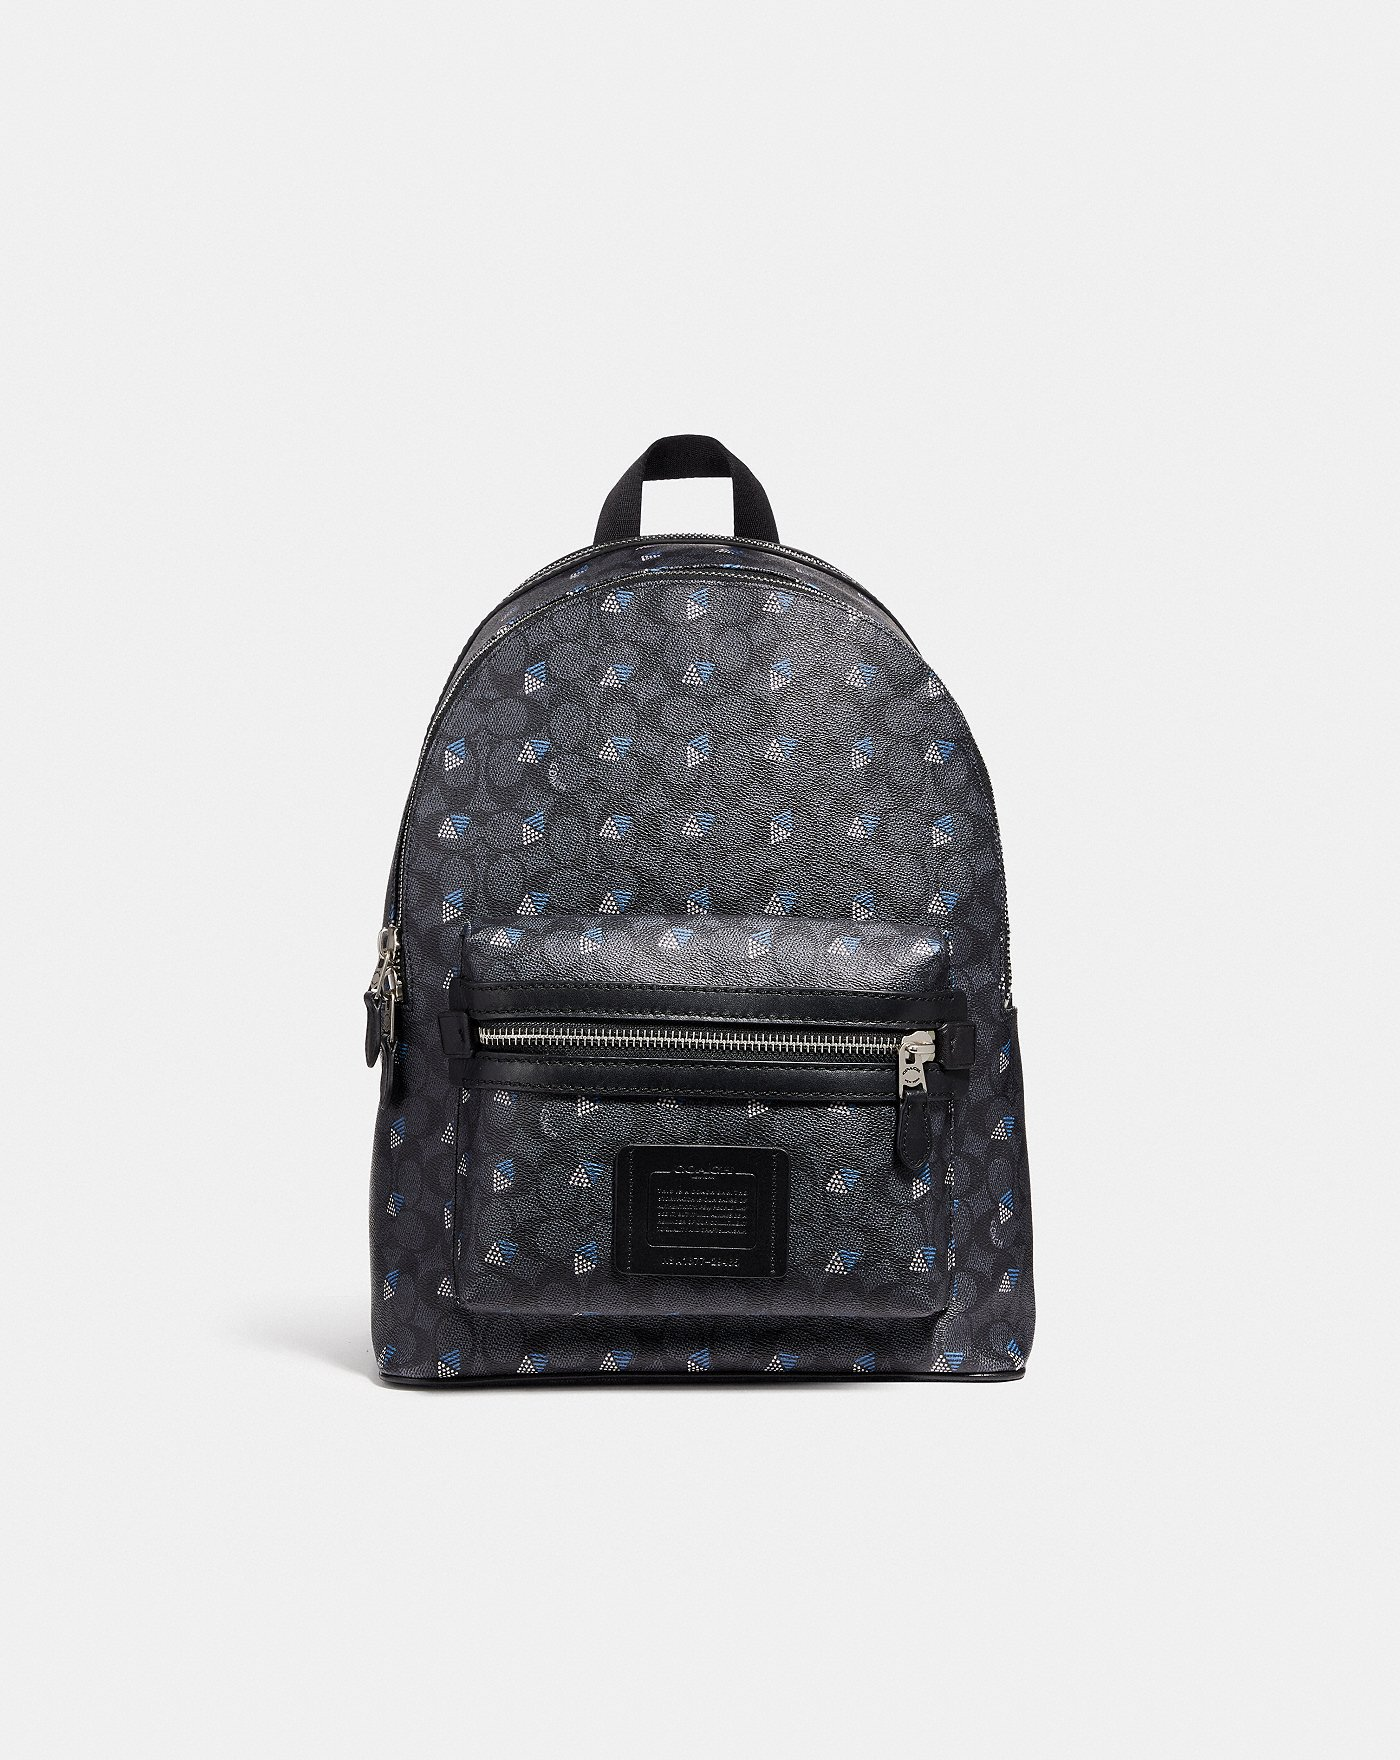 39e8607c59f8 COACH  Academy Backpack in Signature Canvas With Dot Diamond Print